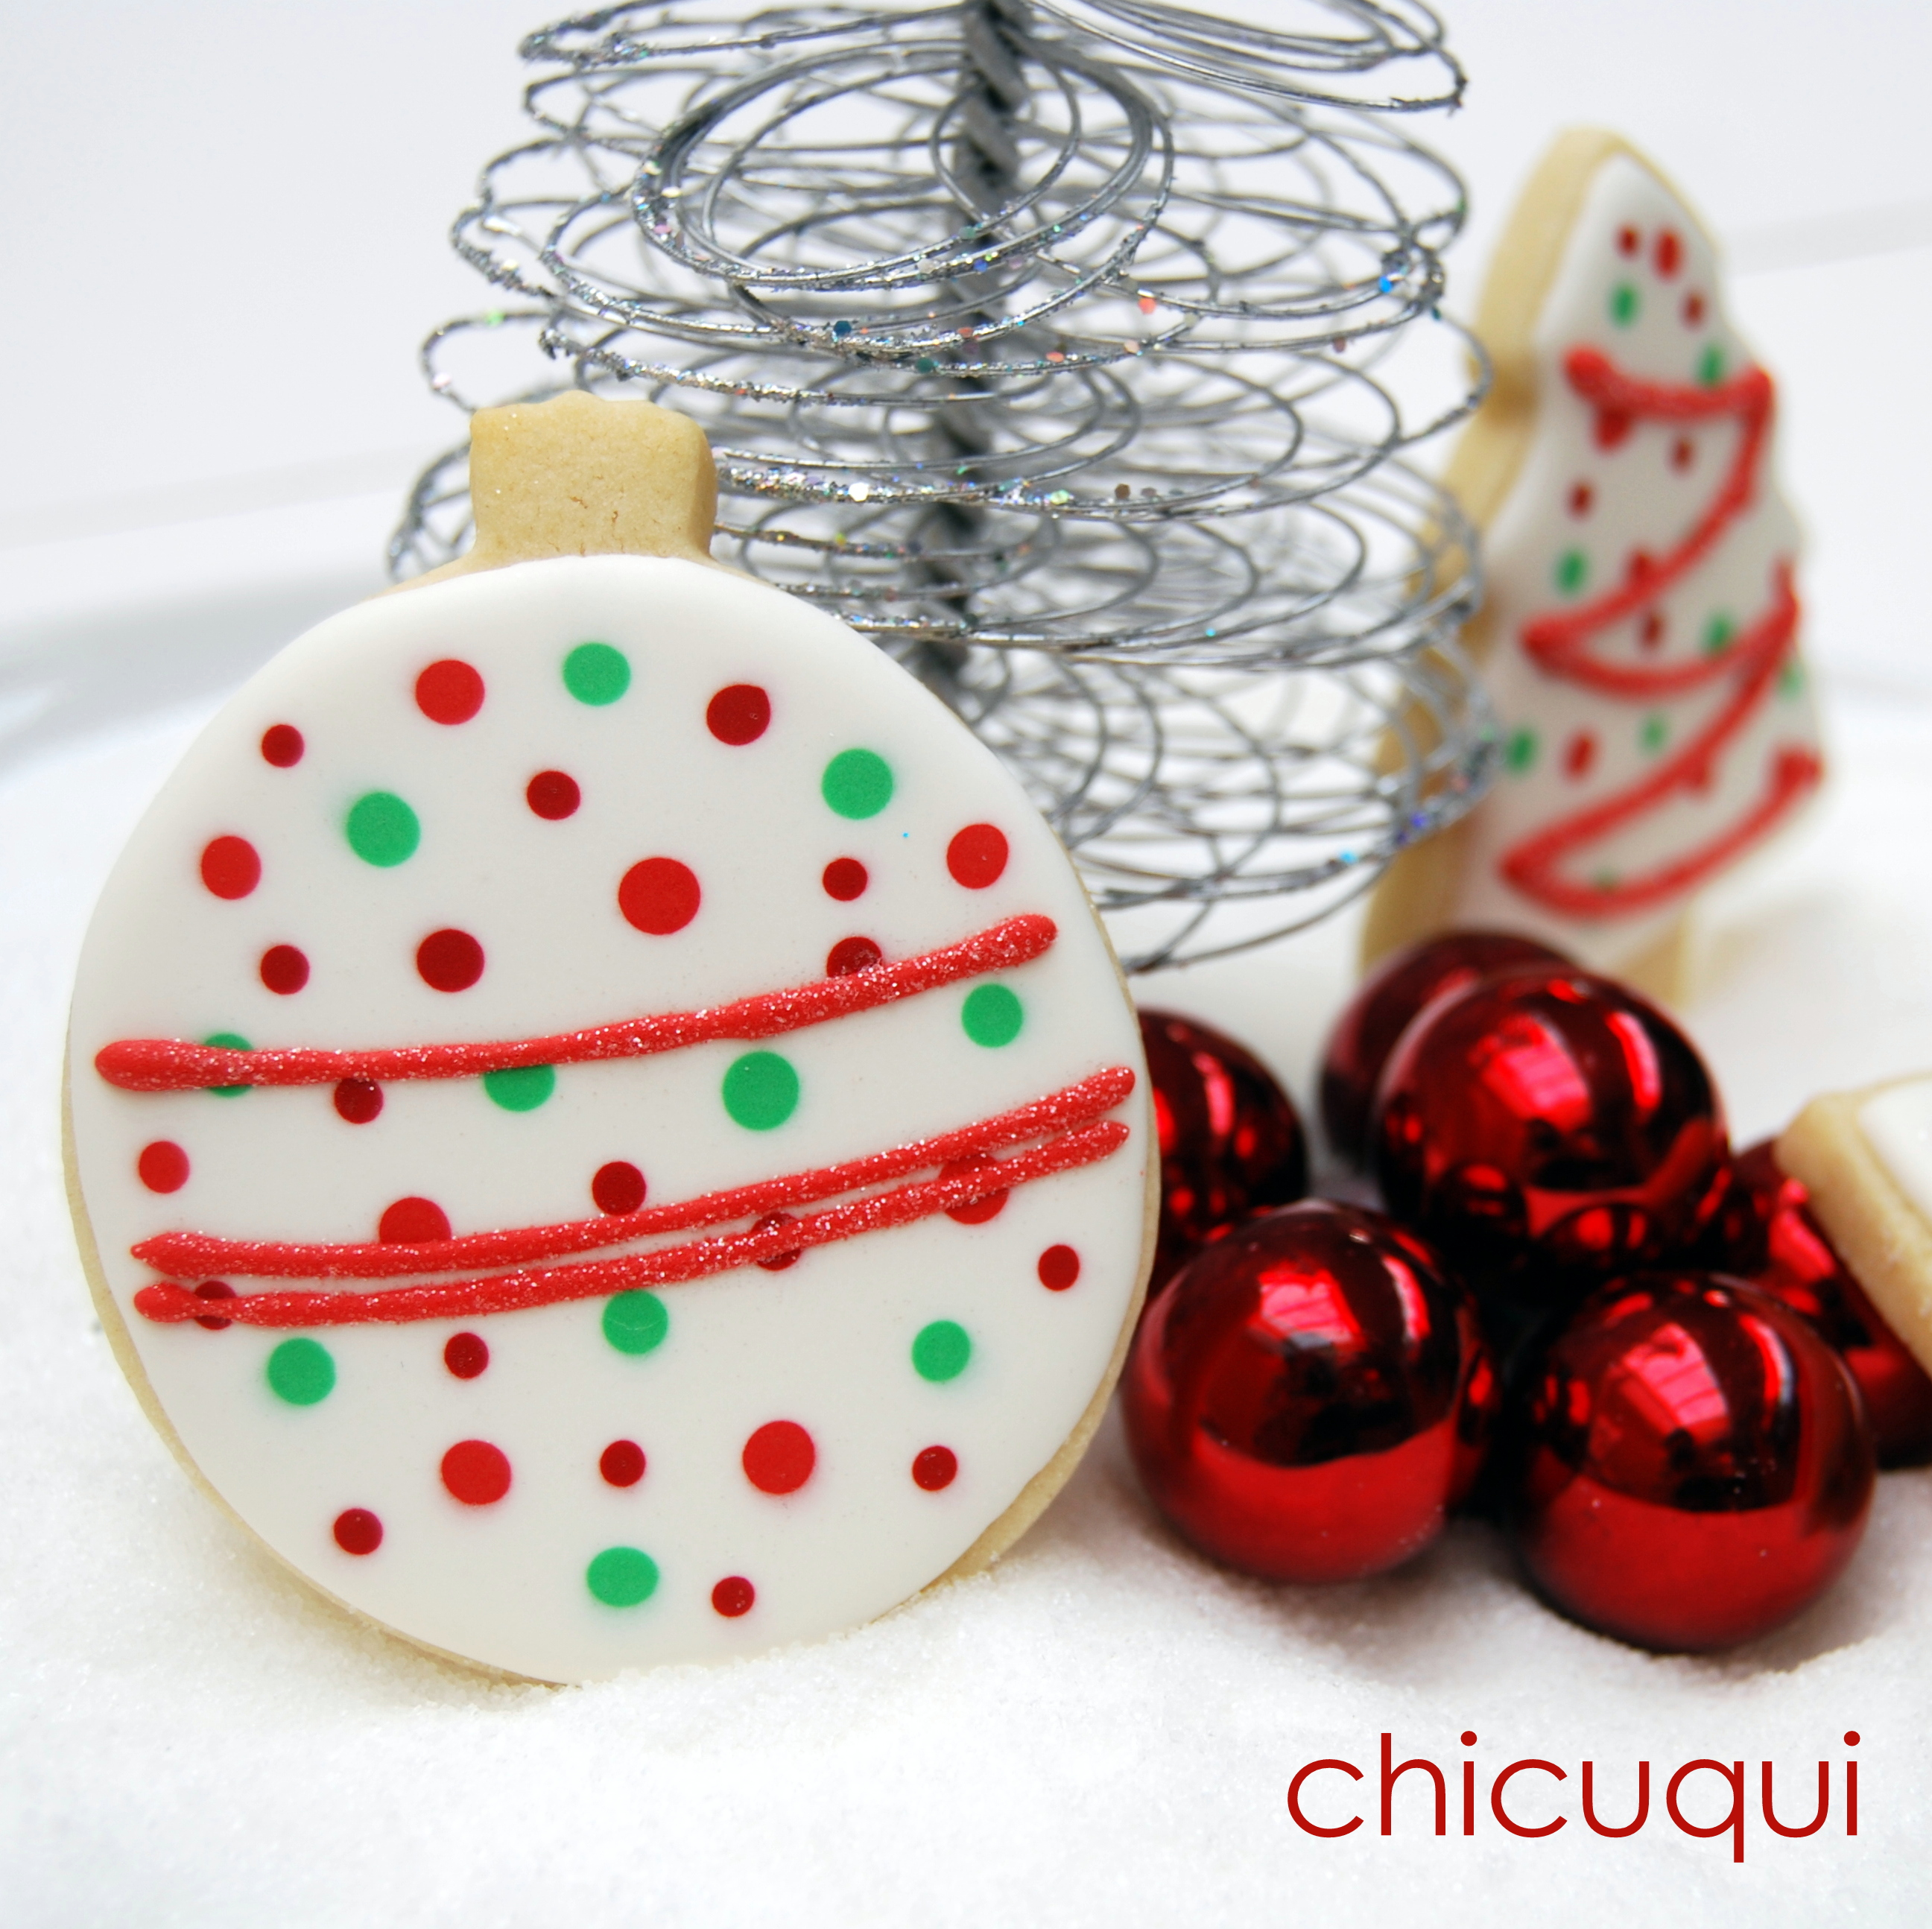 Tutorial De Galletas Decoradas Con Glasa Galletas Decoradas Navideñas: Una Alternativa A Los